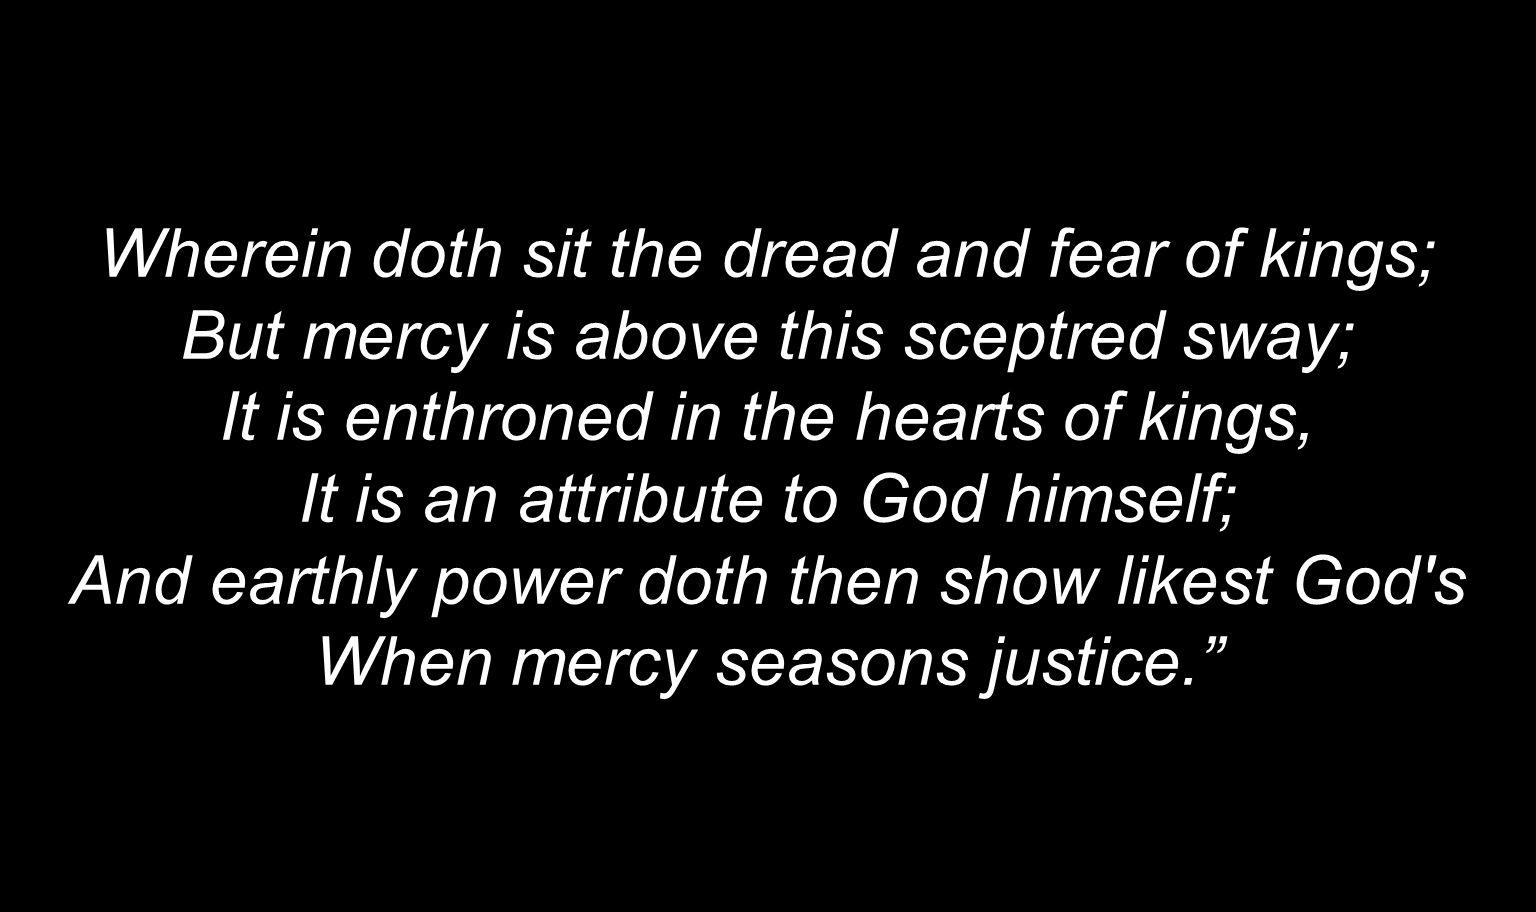 Wherein doth sit the dread and fear of kings; But mercy is above this sceptred sway; It is enthroned in the hearts of kings, It is an attribute to God himself; And earthly power doth then show likest God s When mercy seasons justice.